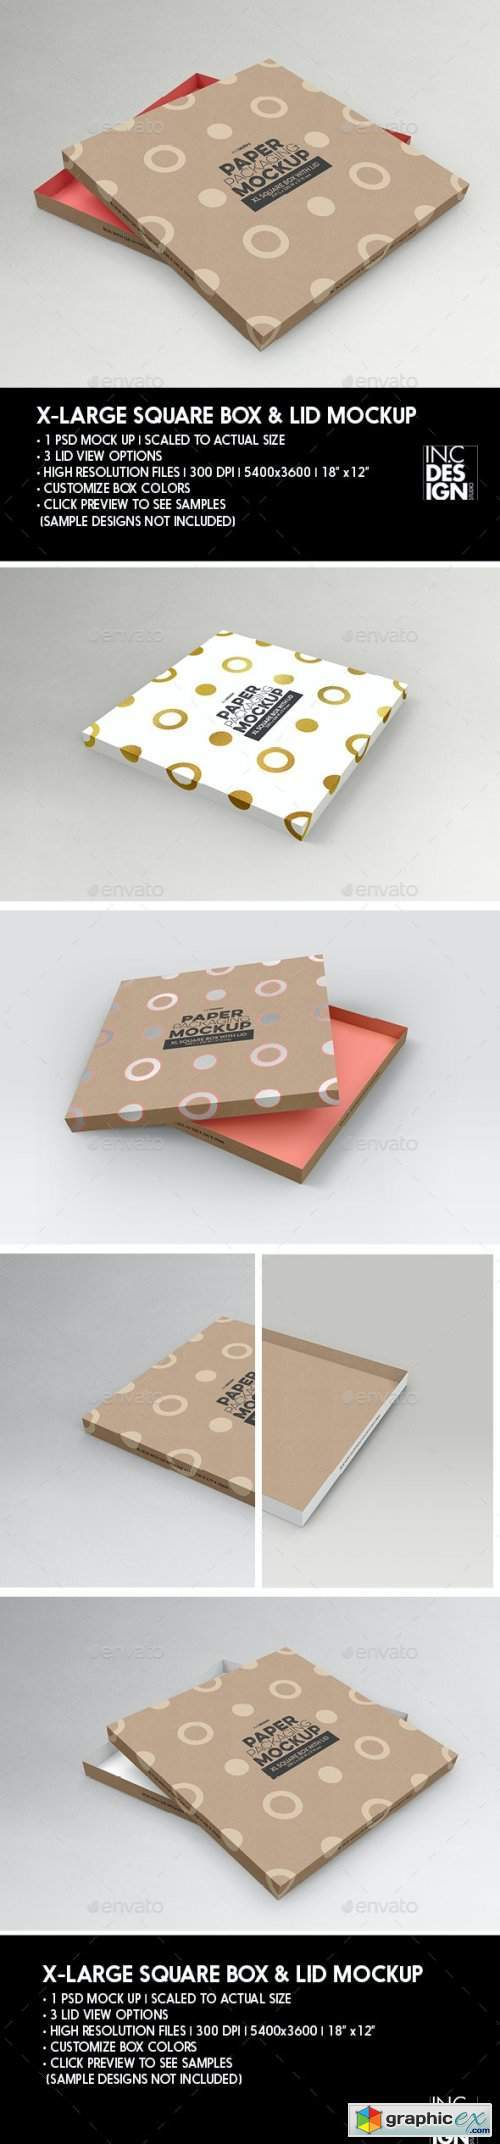 Paper XL Square Box and Lid Packaging Mockup